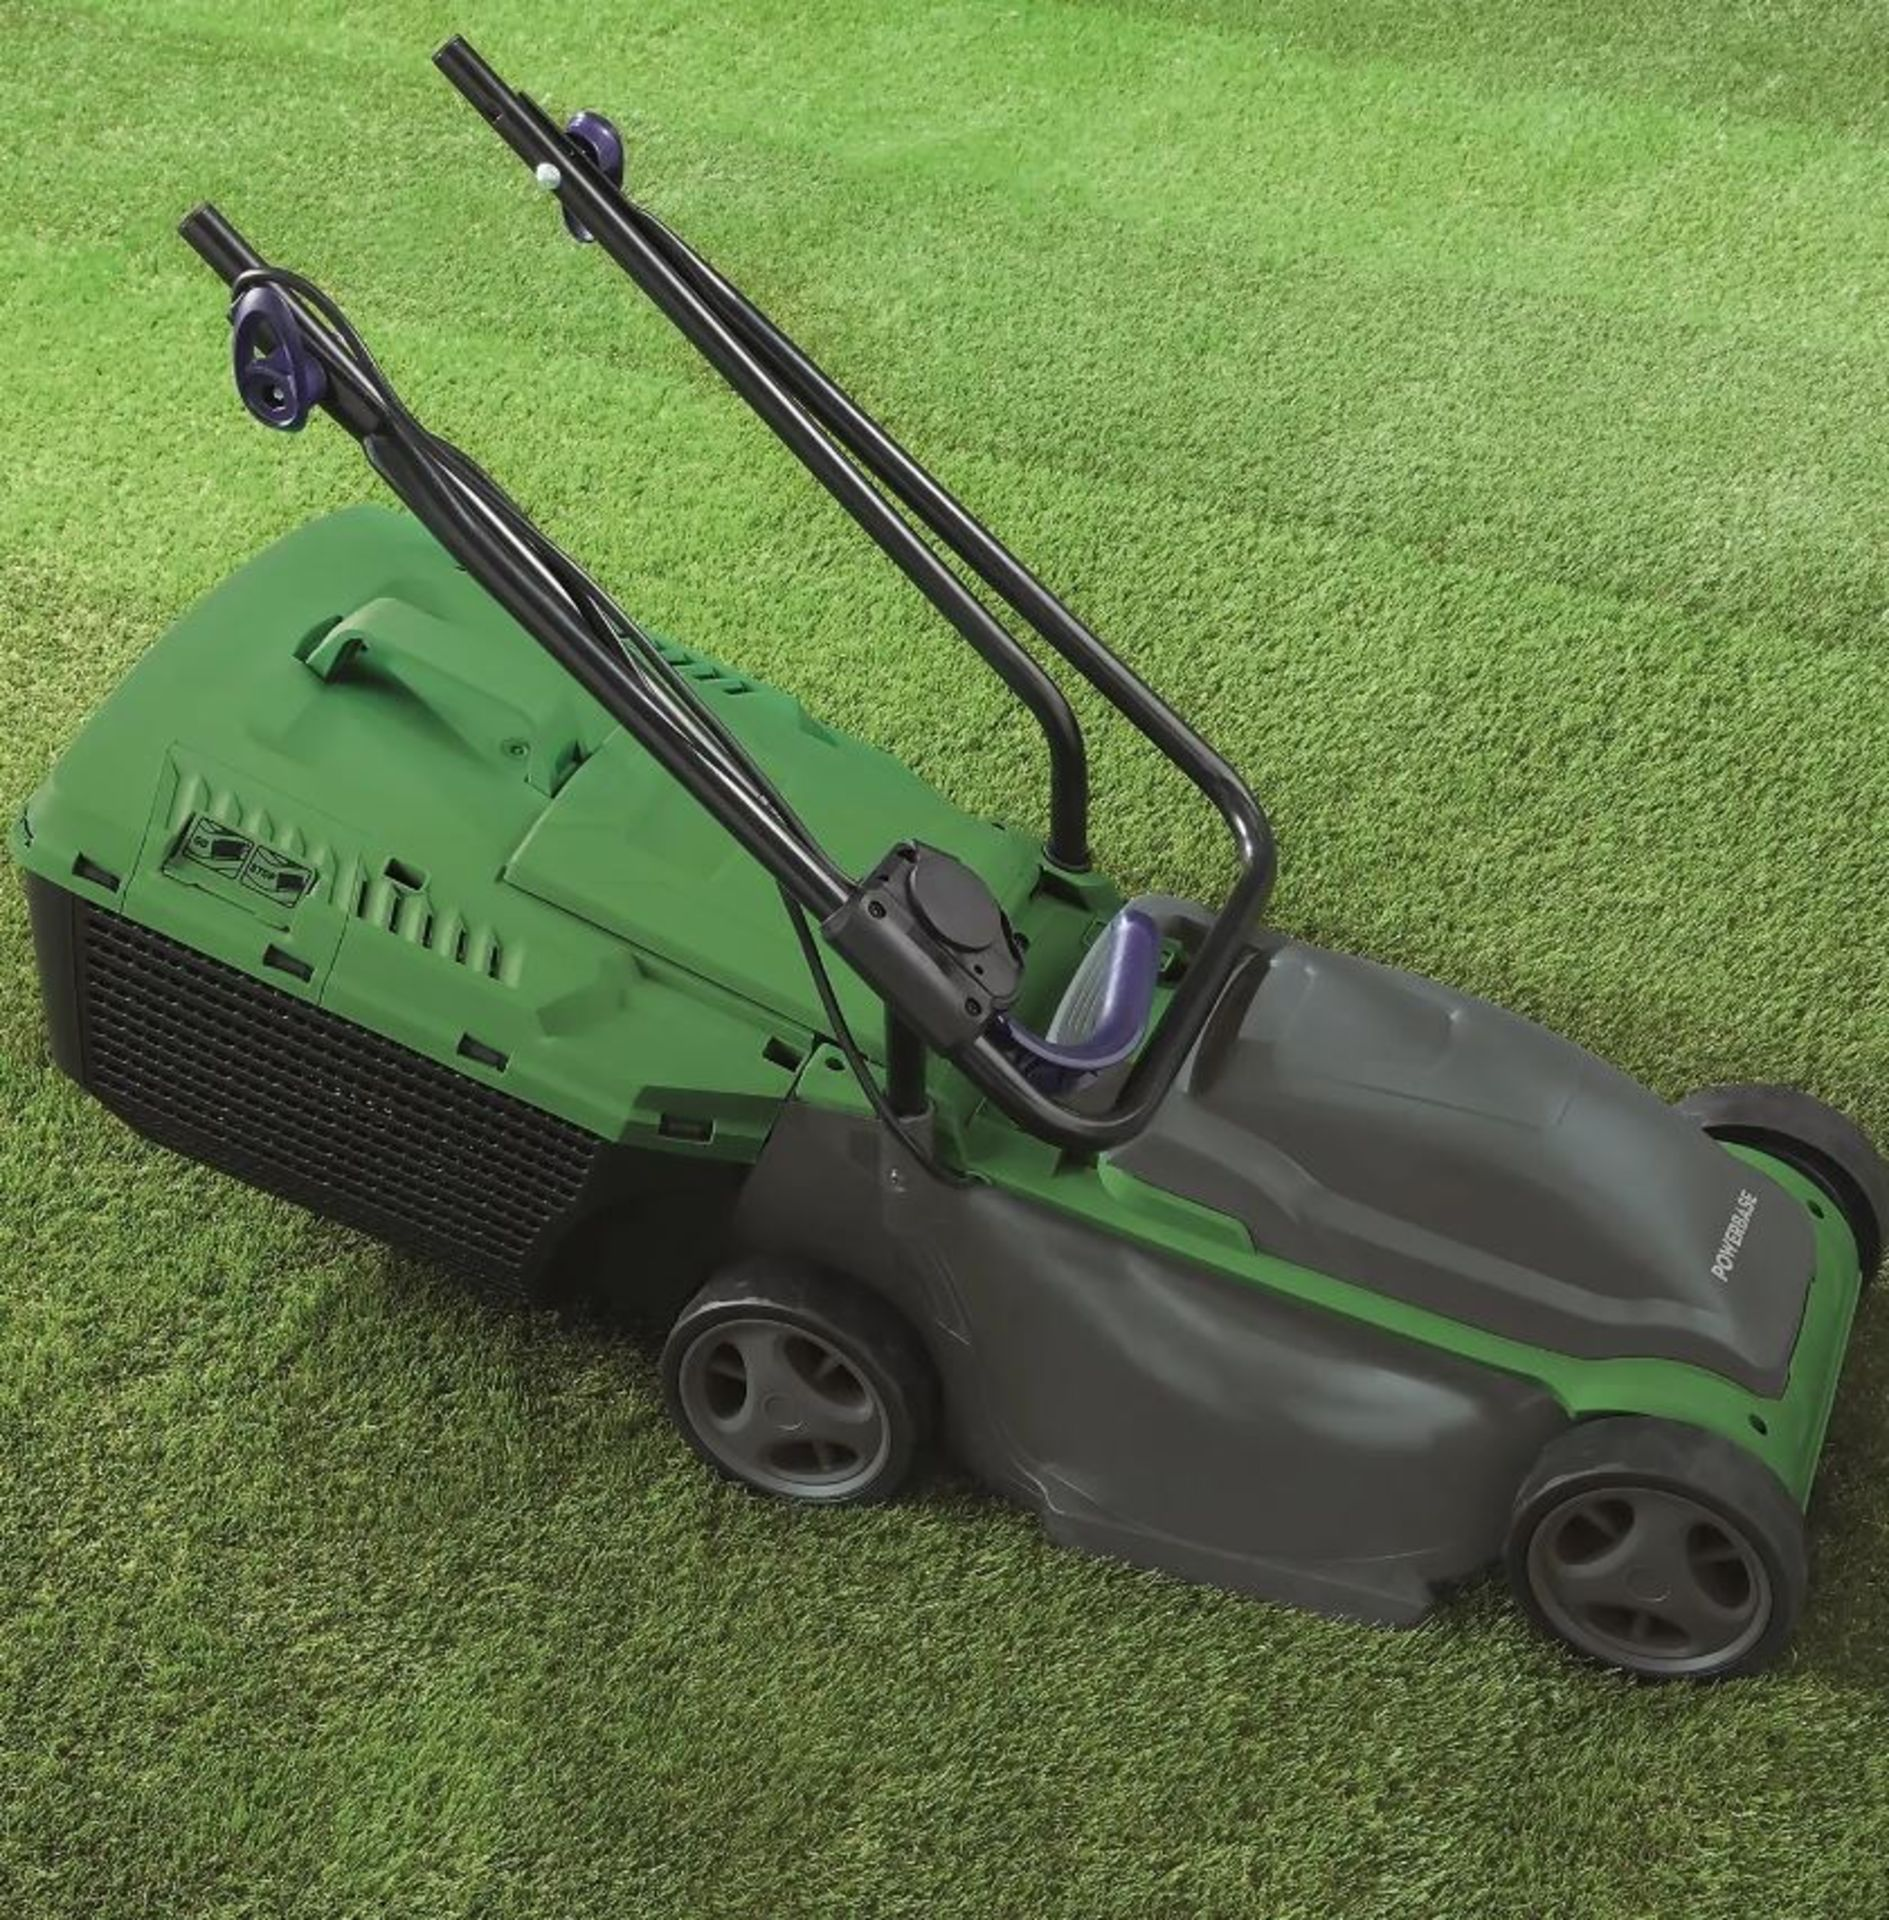 (P3) 1x Powerbase 32cm 1200W Electric Rotary Lawn Mower RRP £59. (Unit Appears Clean, Unused & As - Image 2 of 4